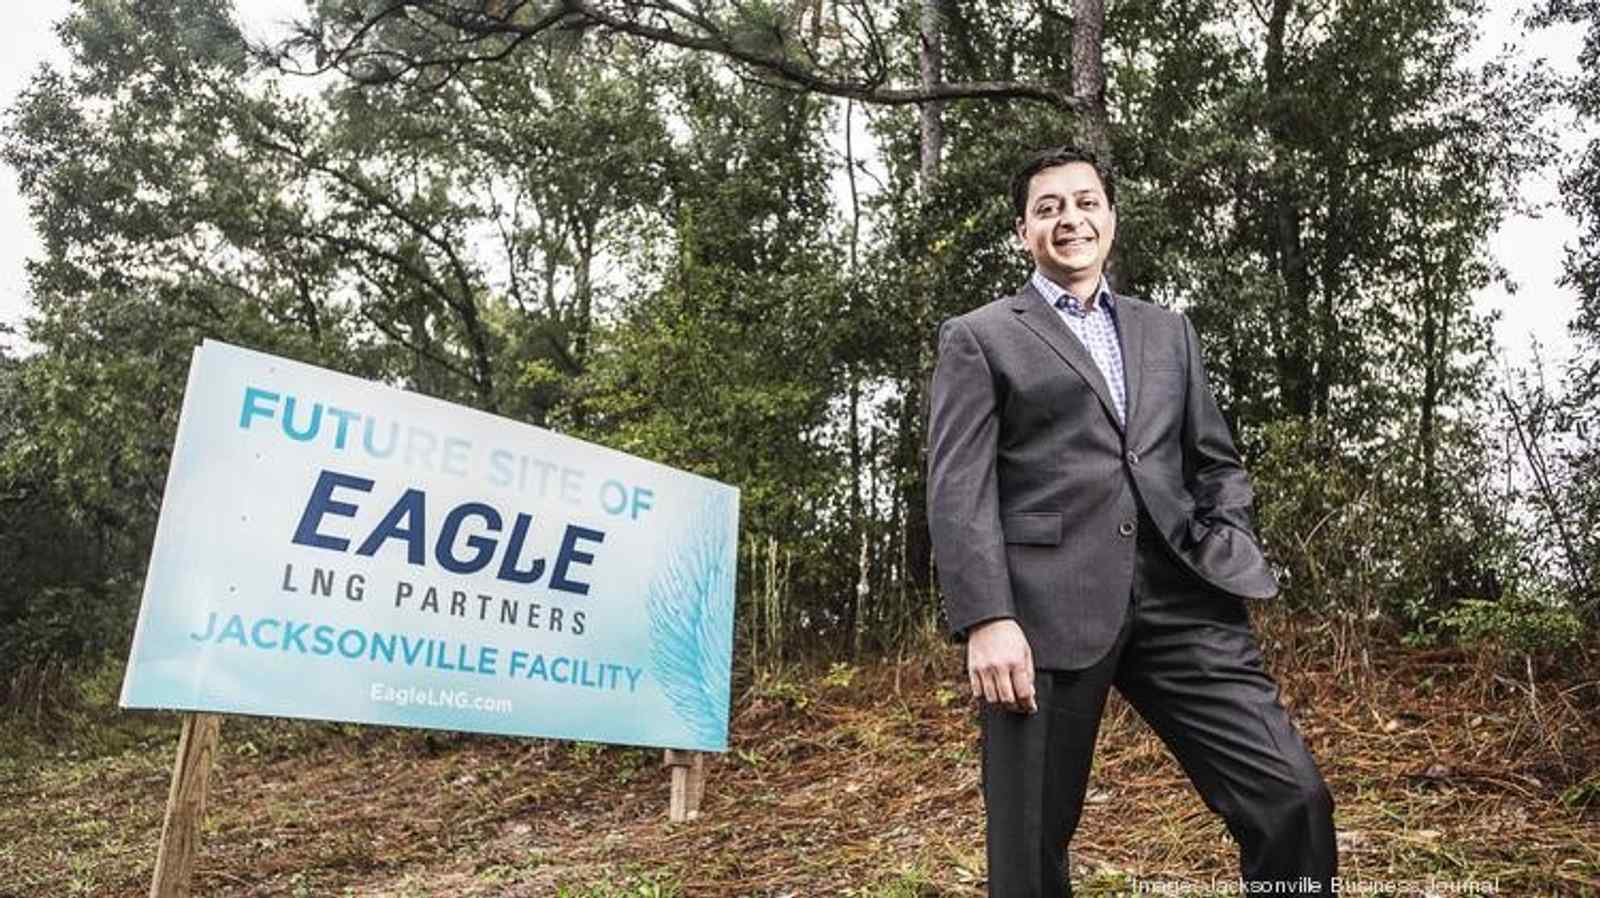 Eagle LNG breaks ground on LNG plant in Jacksonville